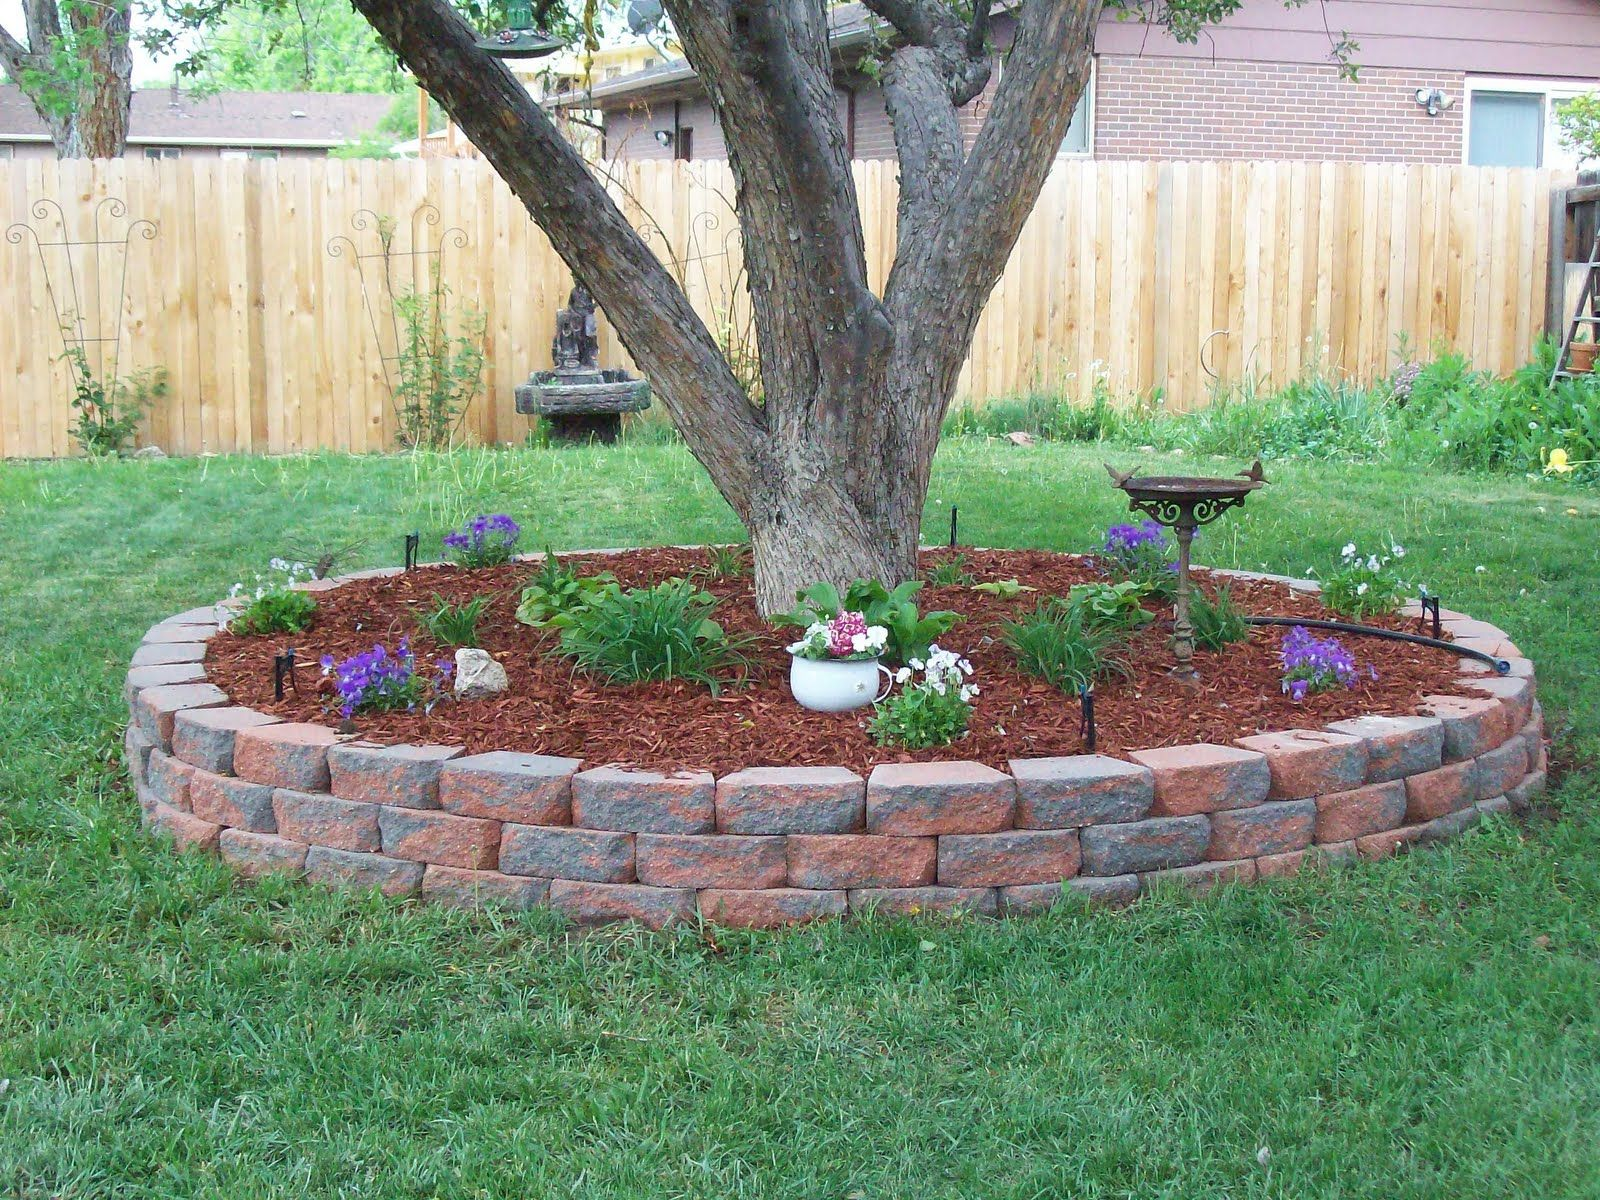 Exciting Small Mowing Ly Easy Landscaping Projects Purple Wildflowers Landscaping Around Pine Trees Ideas Landscaping Ideas Around Trees S Preventstripping Surround Trees Brick outdoor Landscaping Around Trees Ideas